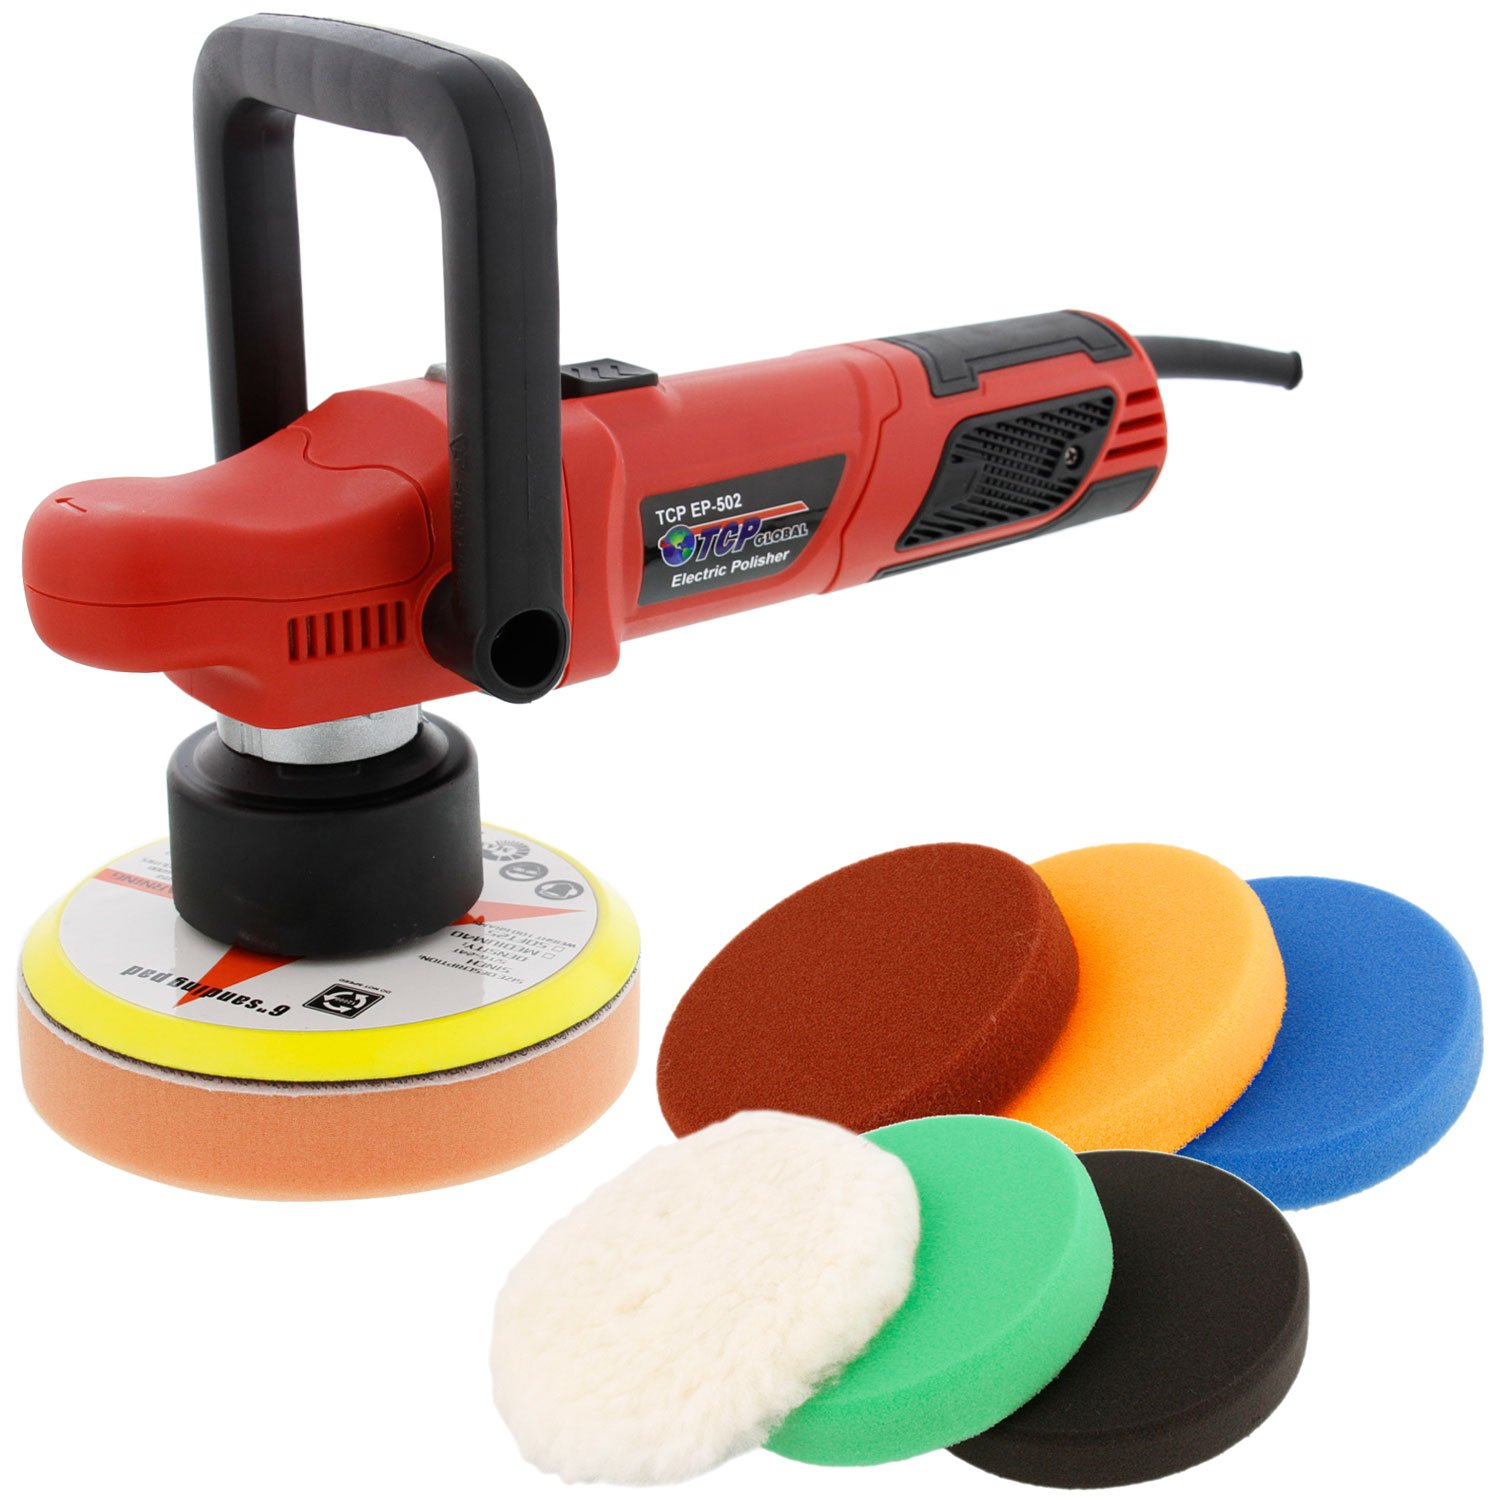 TCP Global Model EP-502-6'' Variable Speed Random Orbit Dual-Action Polisher with a 6 Pad Professional Buffing and Polishing Kit - Buff, Polish & Detail Car Auto Paint